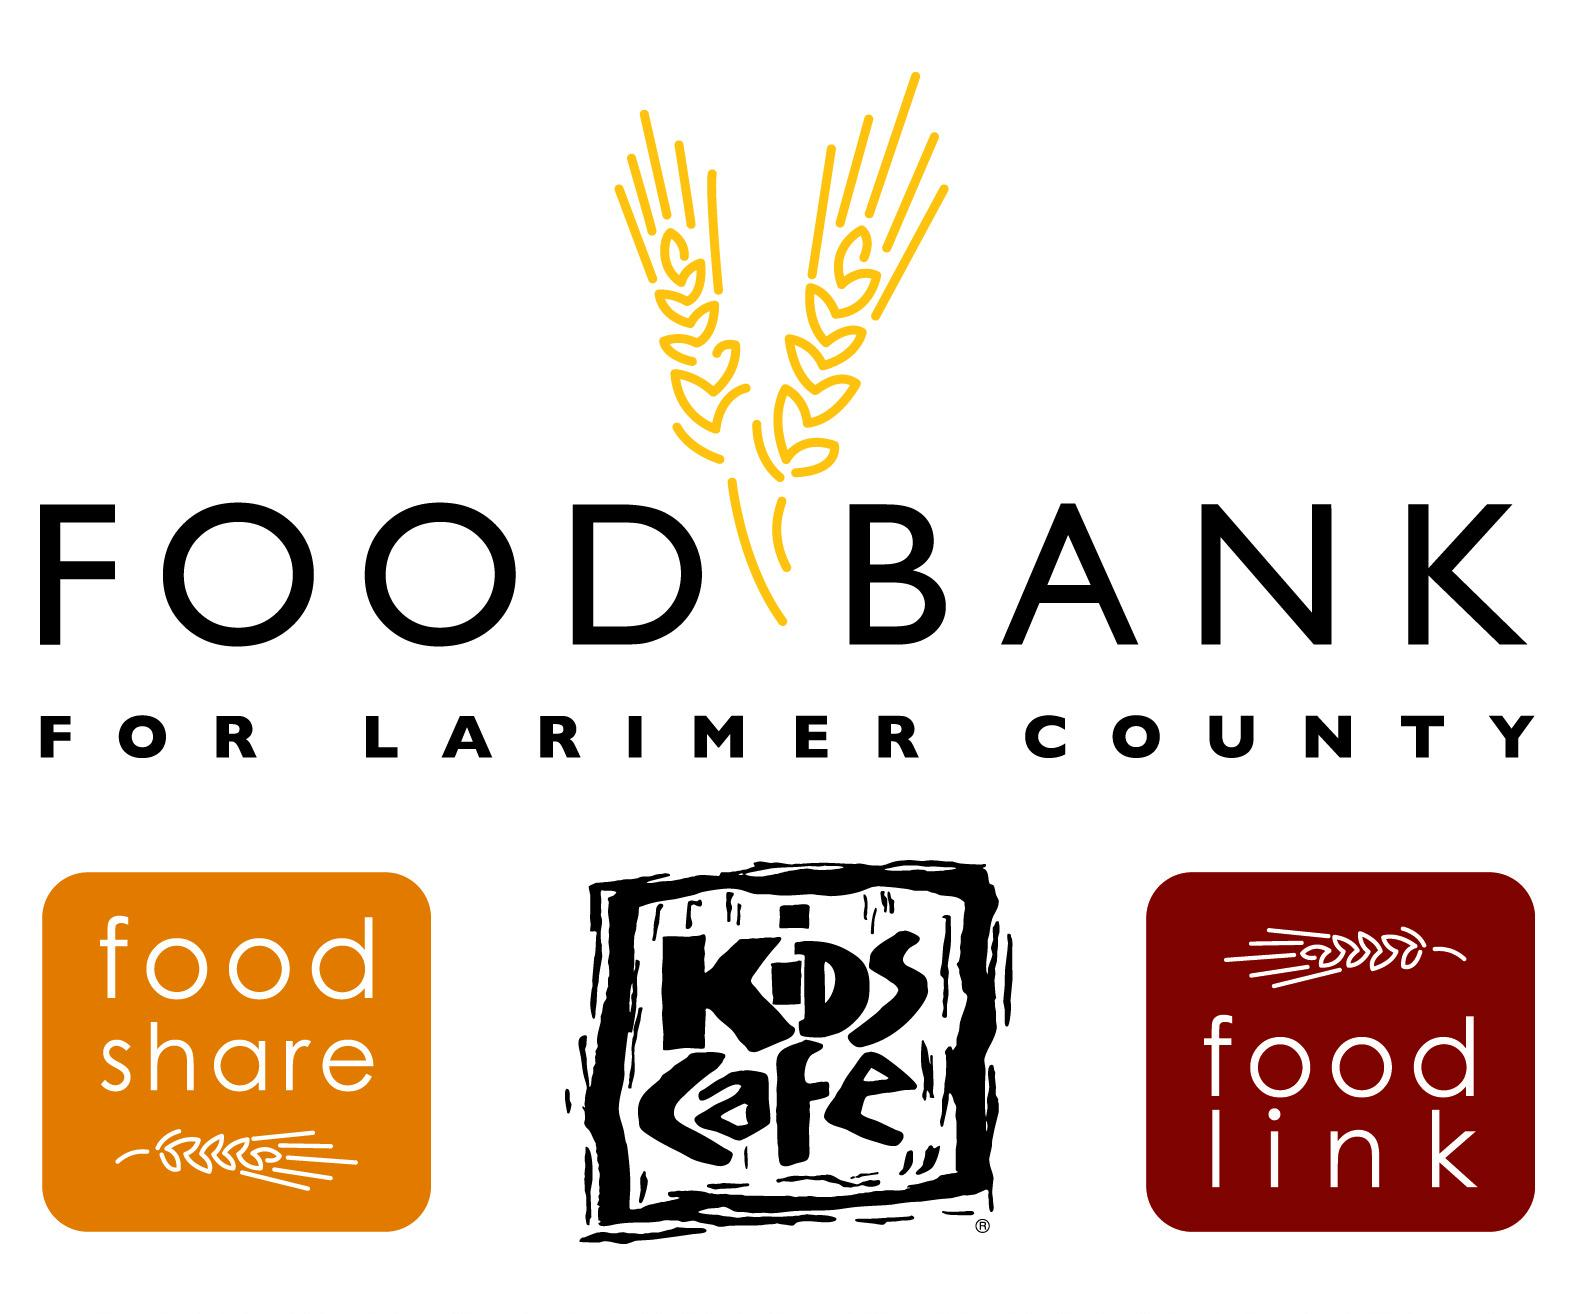 Spotlight image: Food Bank for Larimer County